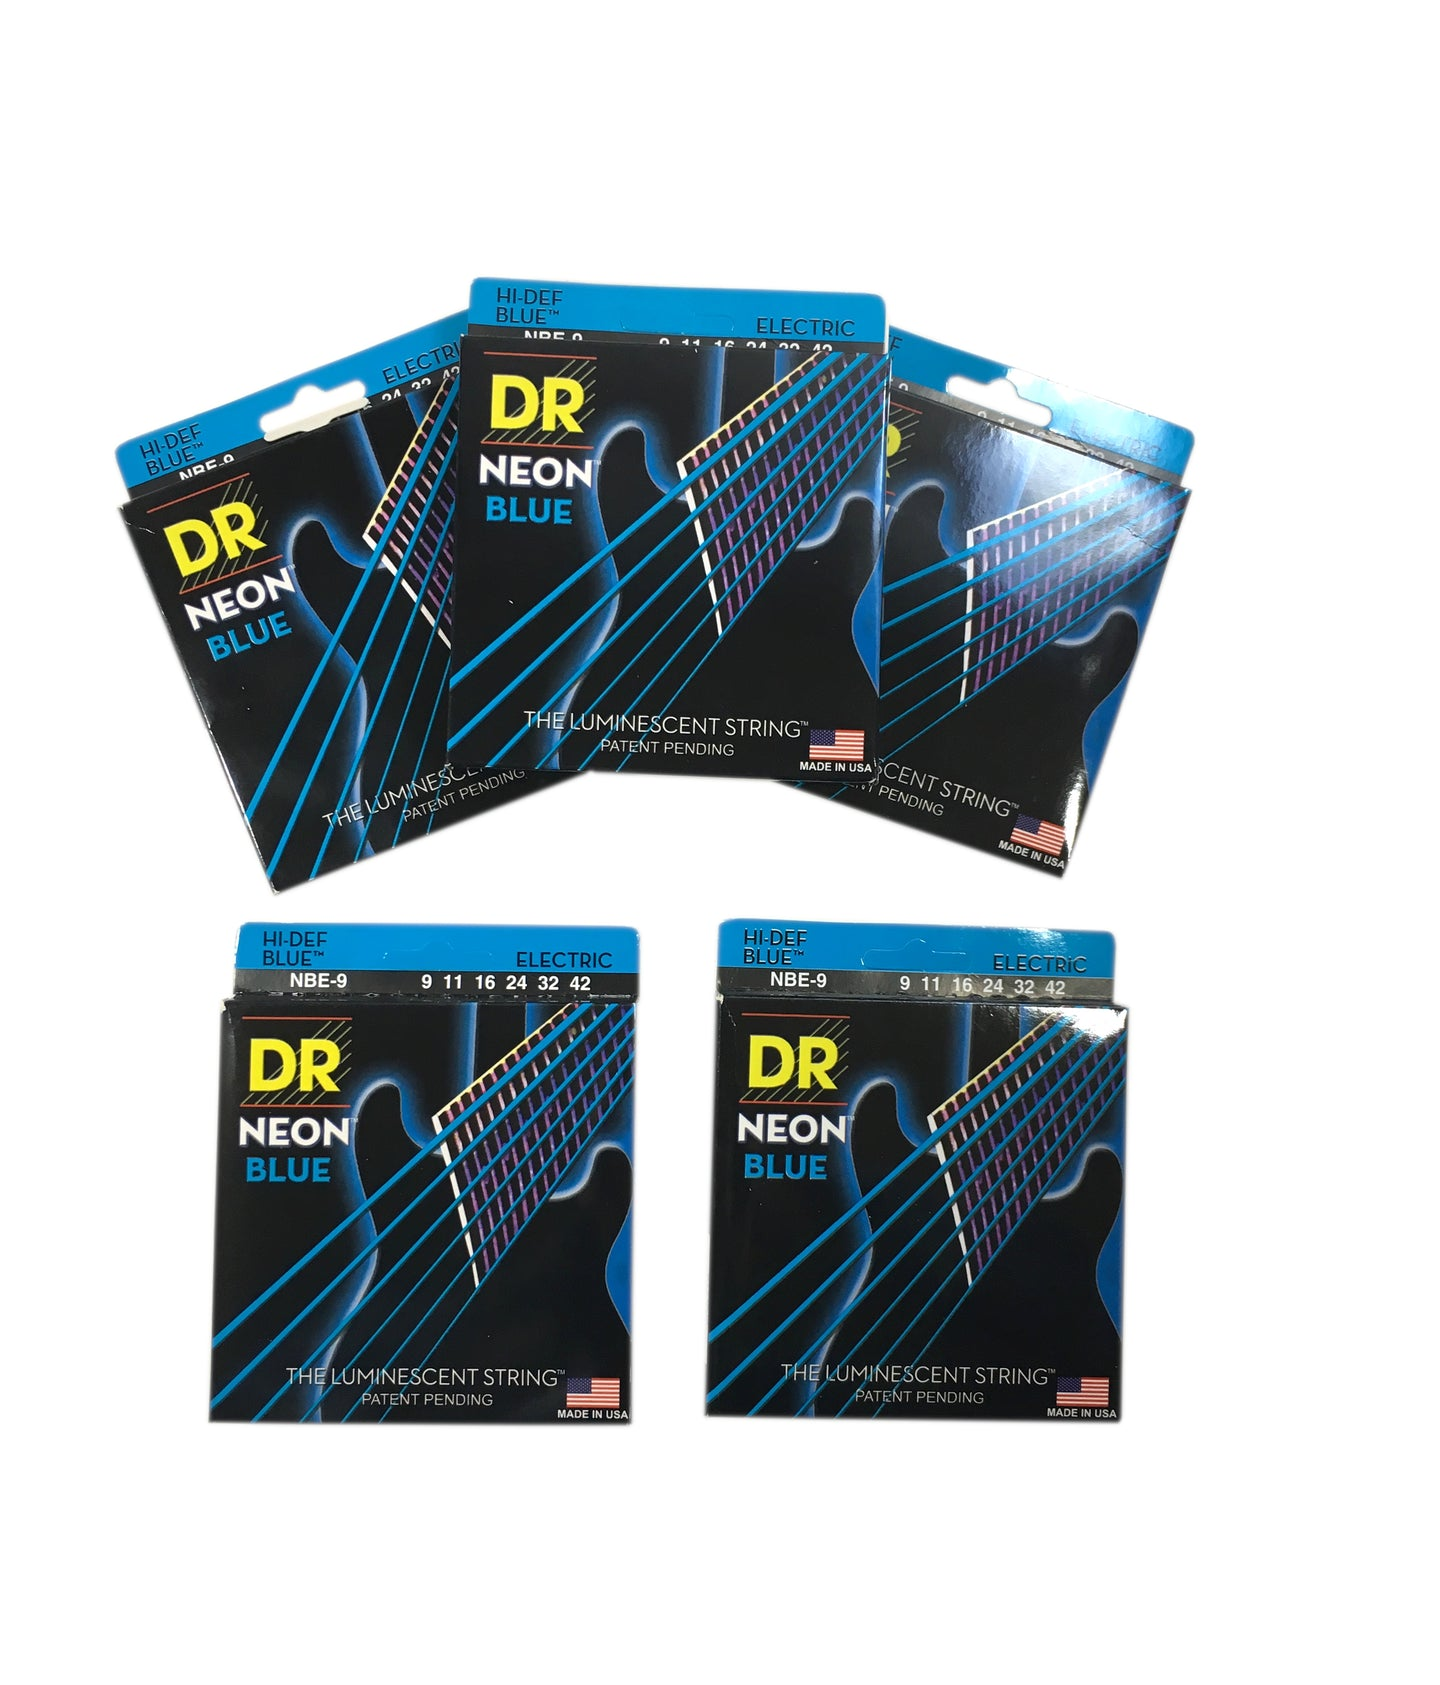 DR Guitar Strings 5 Pack Electric Neon Blue 09-42 Light.